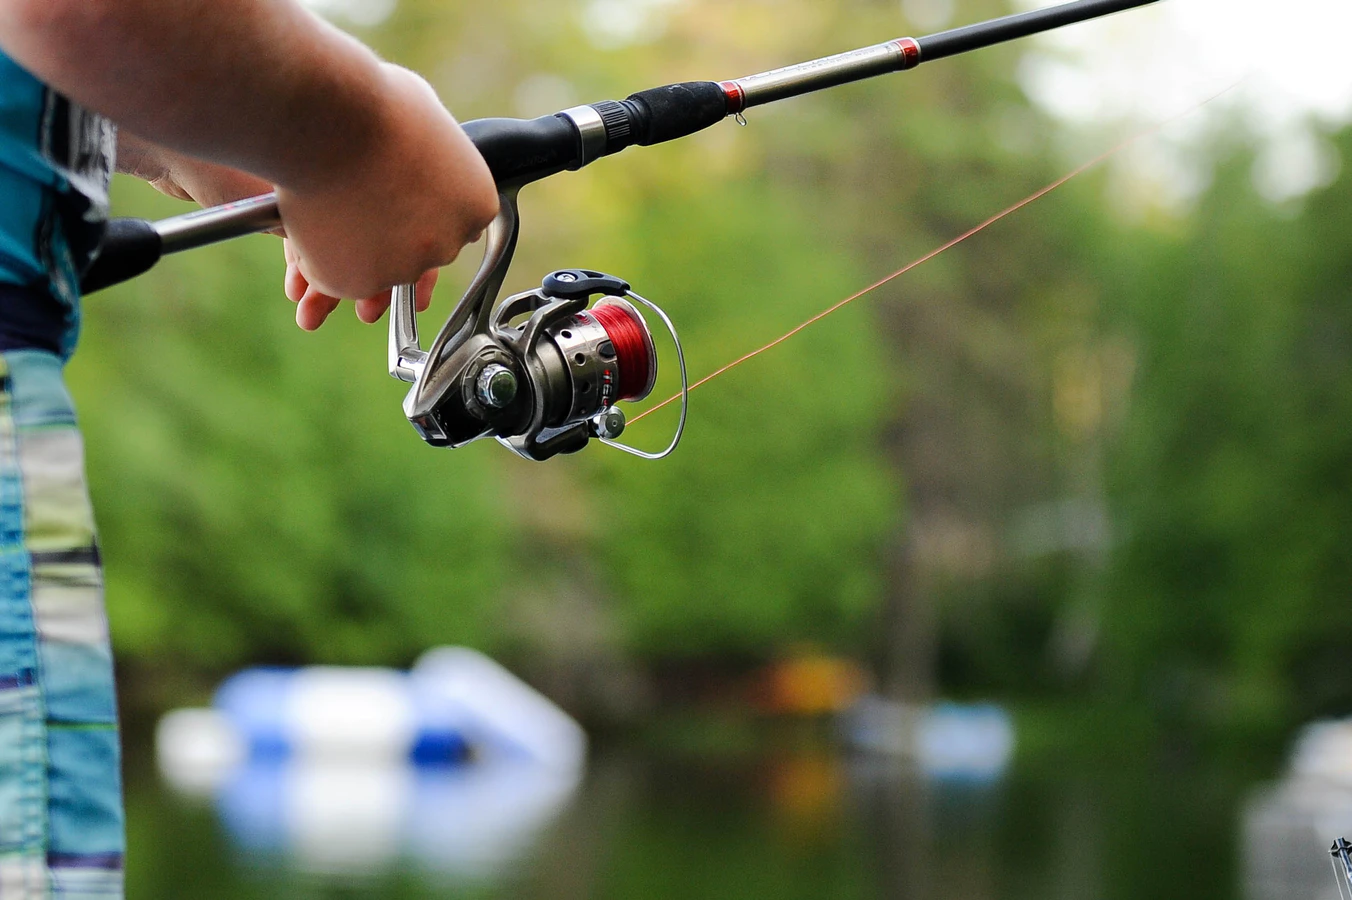 Planning a Fishing Trip? Here's What to Prepare